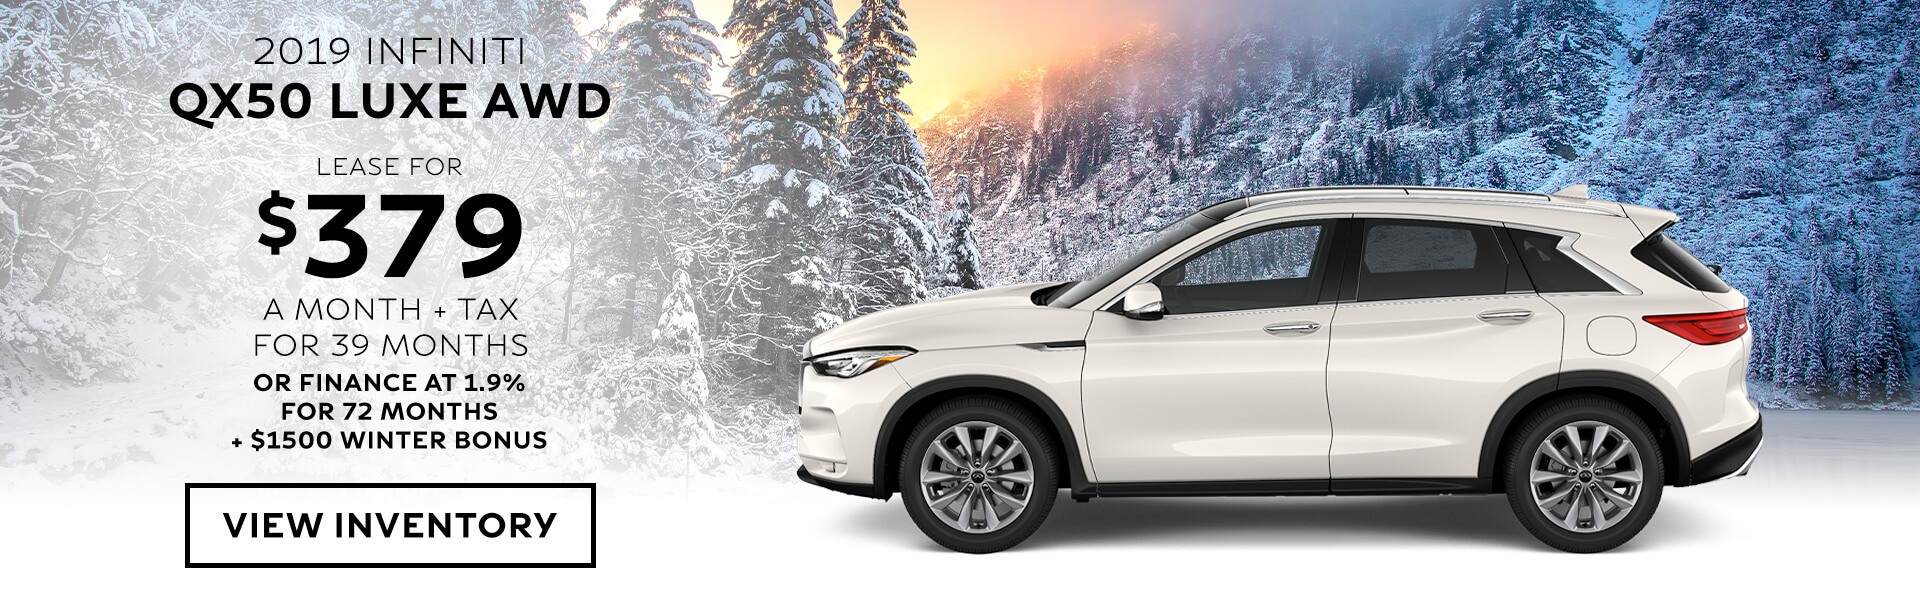 QX50 LUXE- Lease for $379